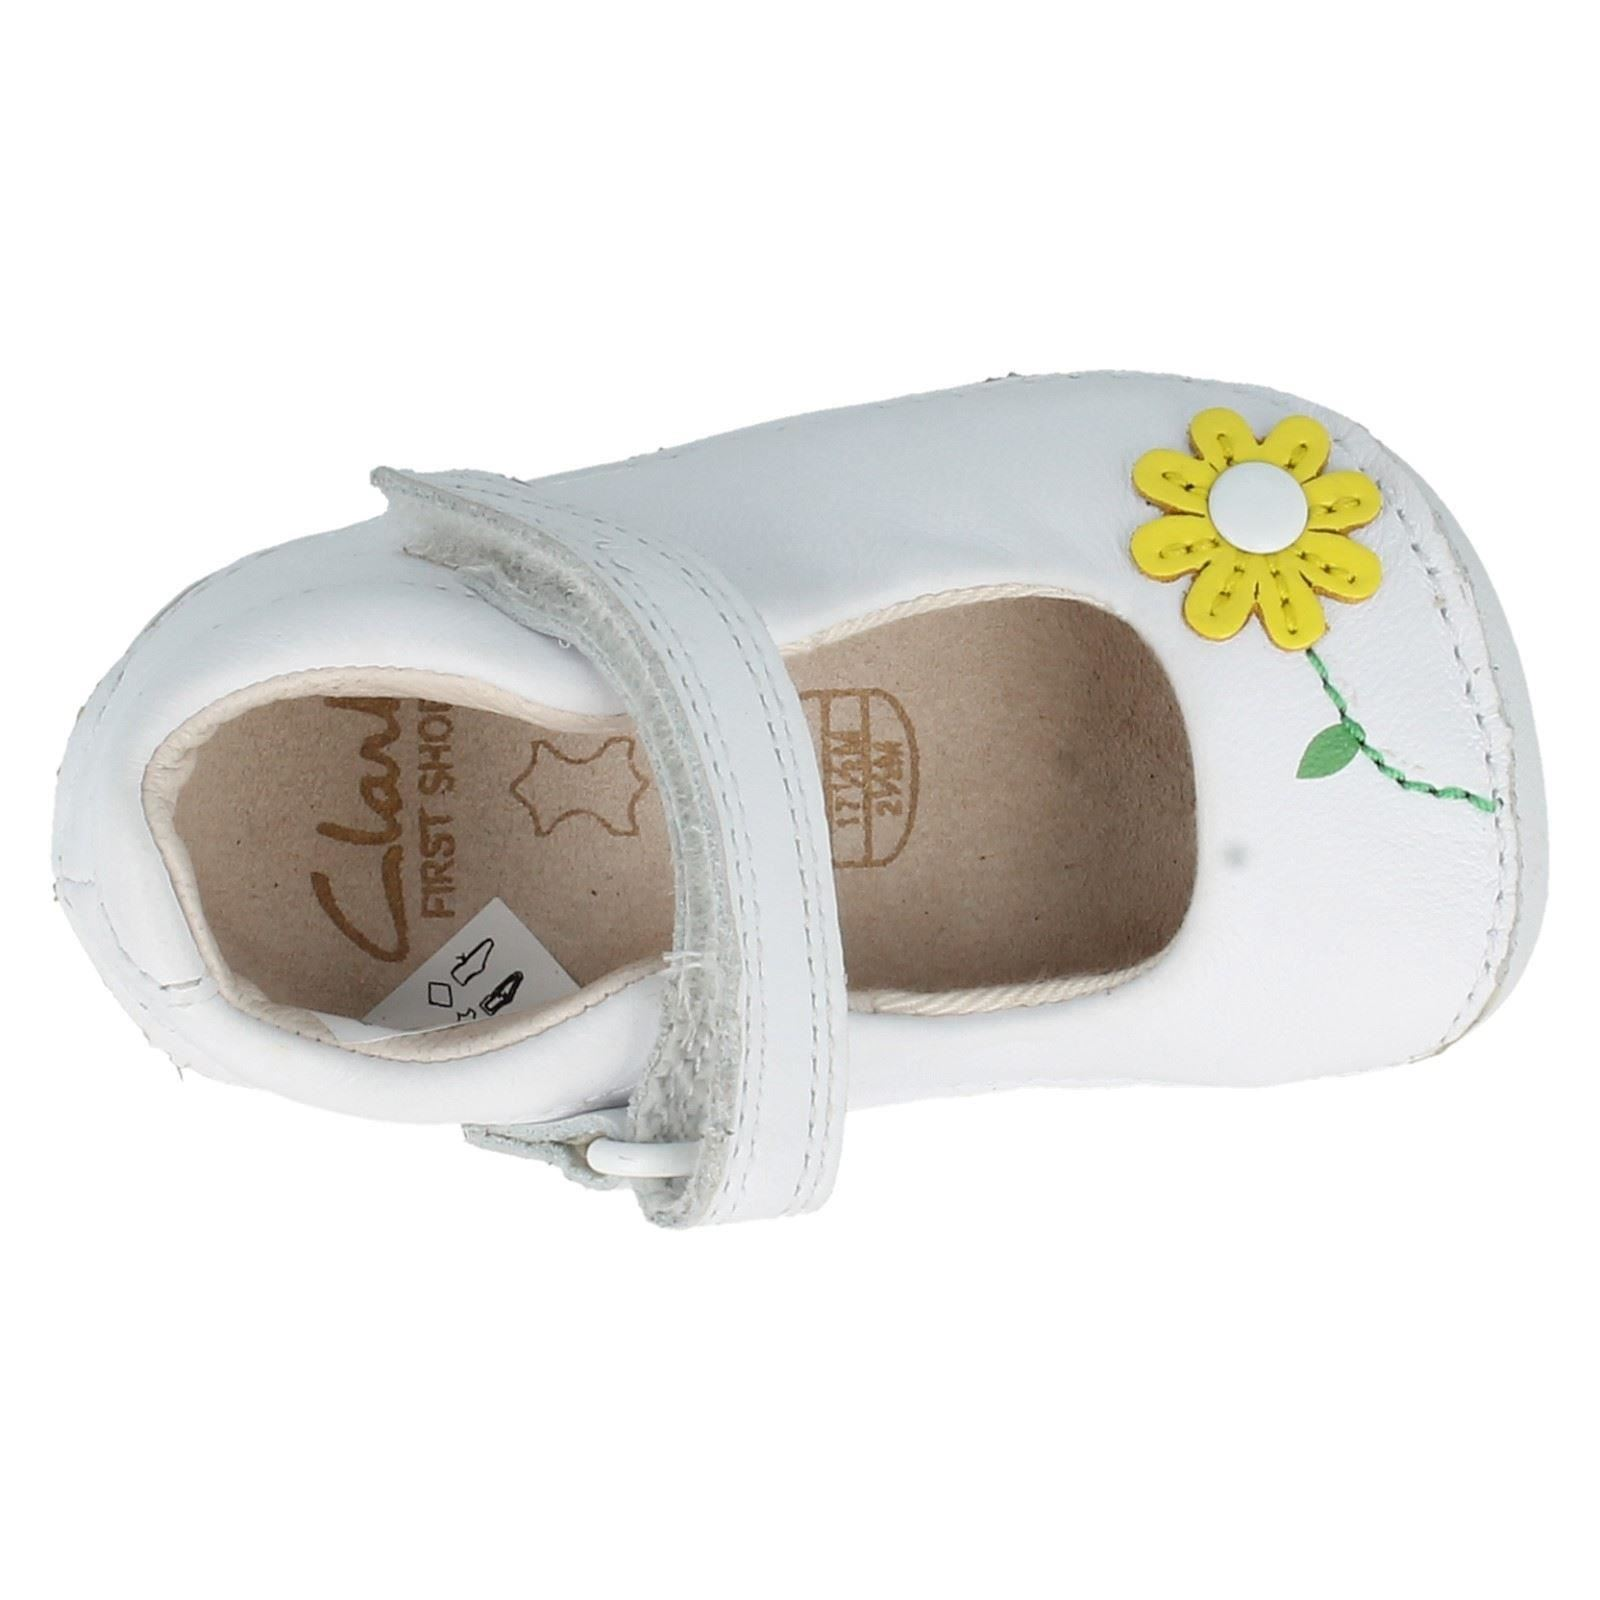 Girls Clarks First Shoes The Style - Little Jam